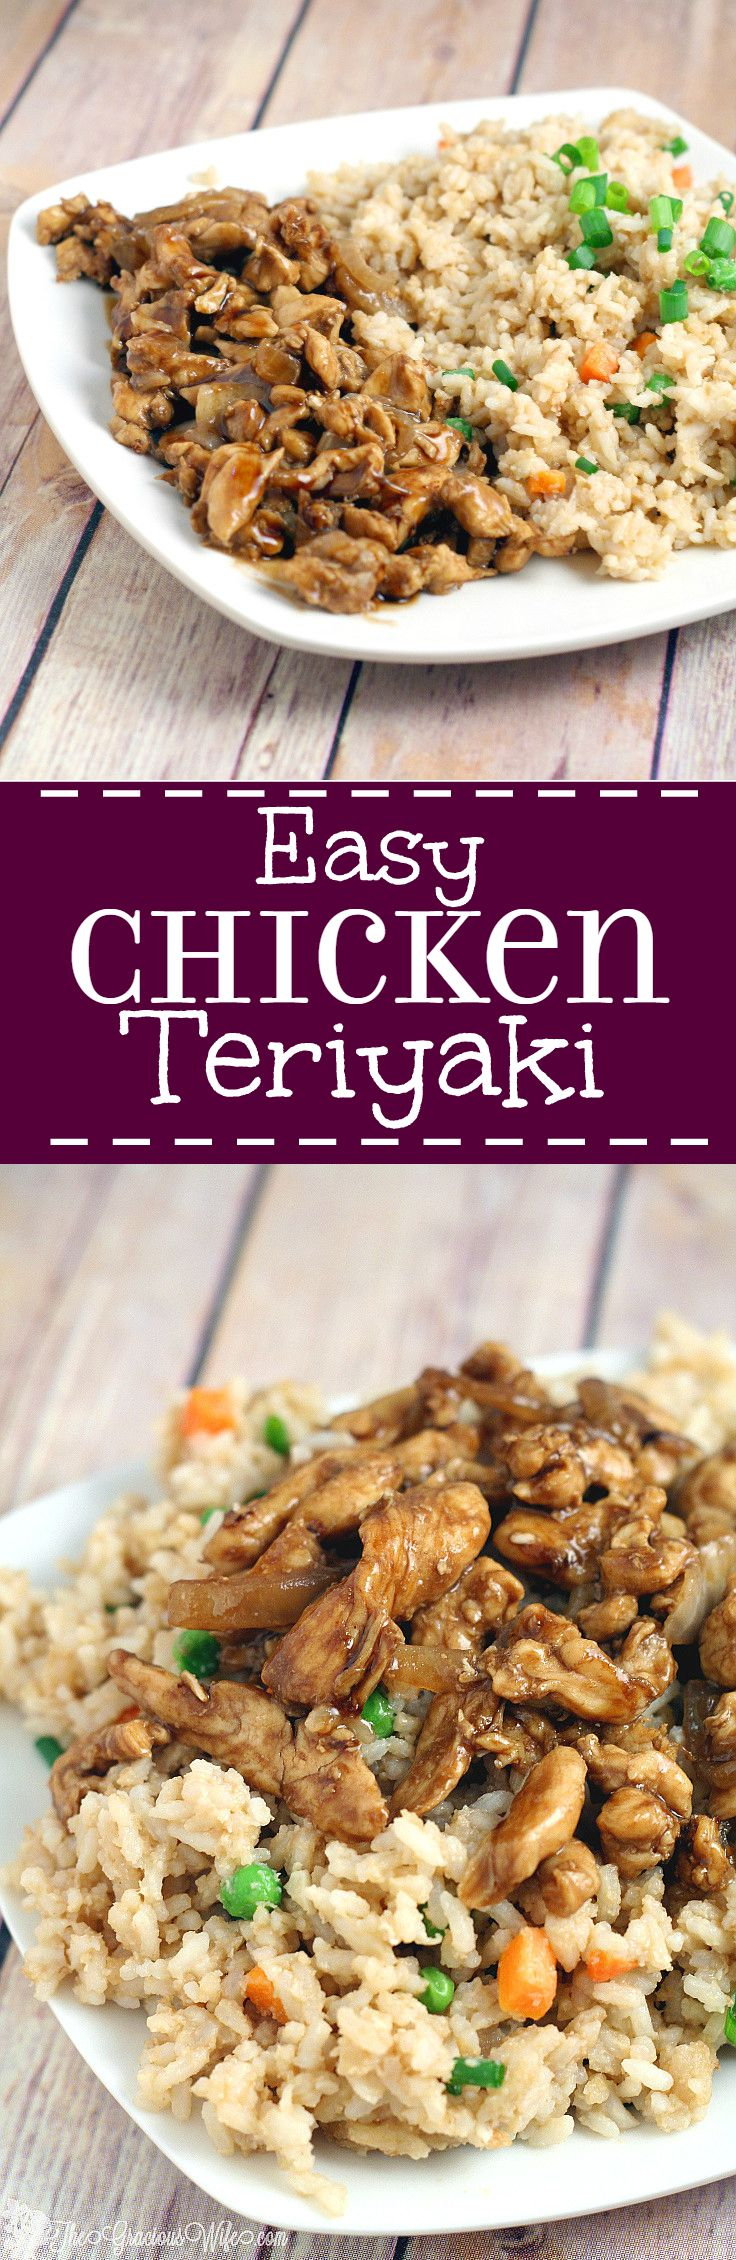 Easy Chicken Teriyaki Recipe is a quick and easy dinner idea that the whole family will love. My kids gobble this up!